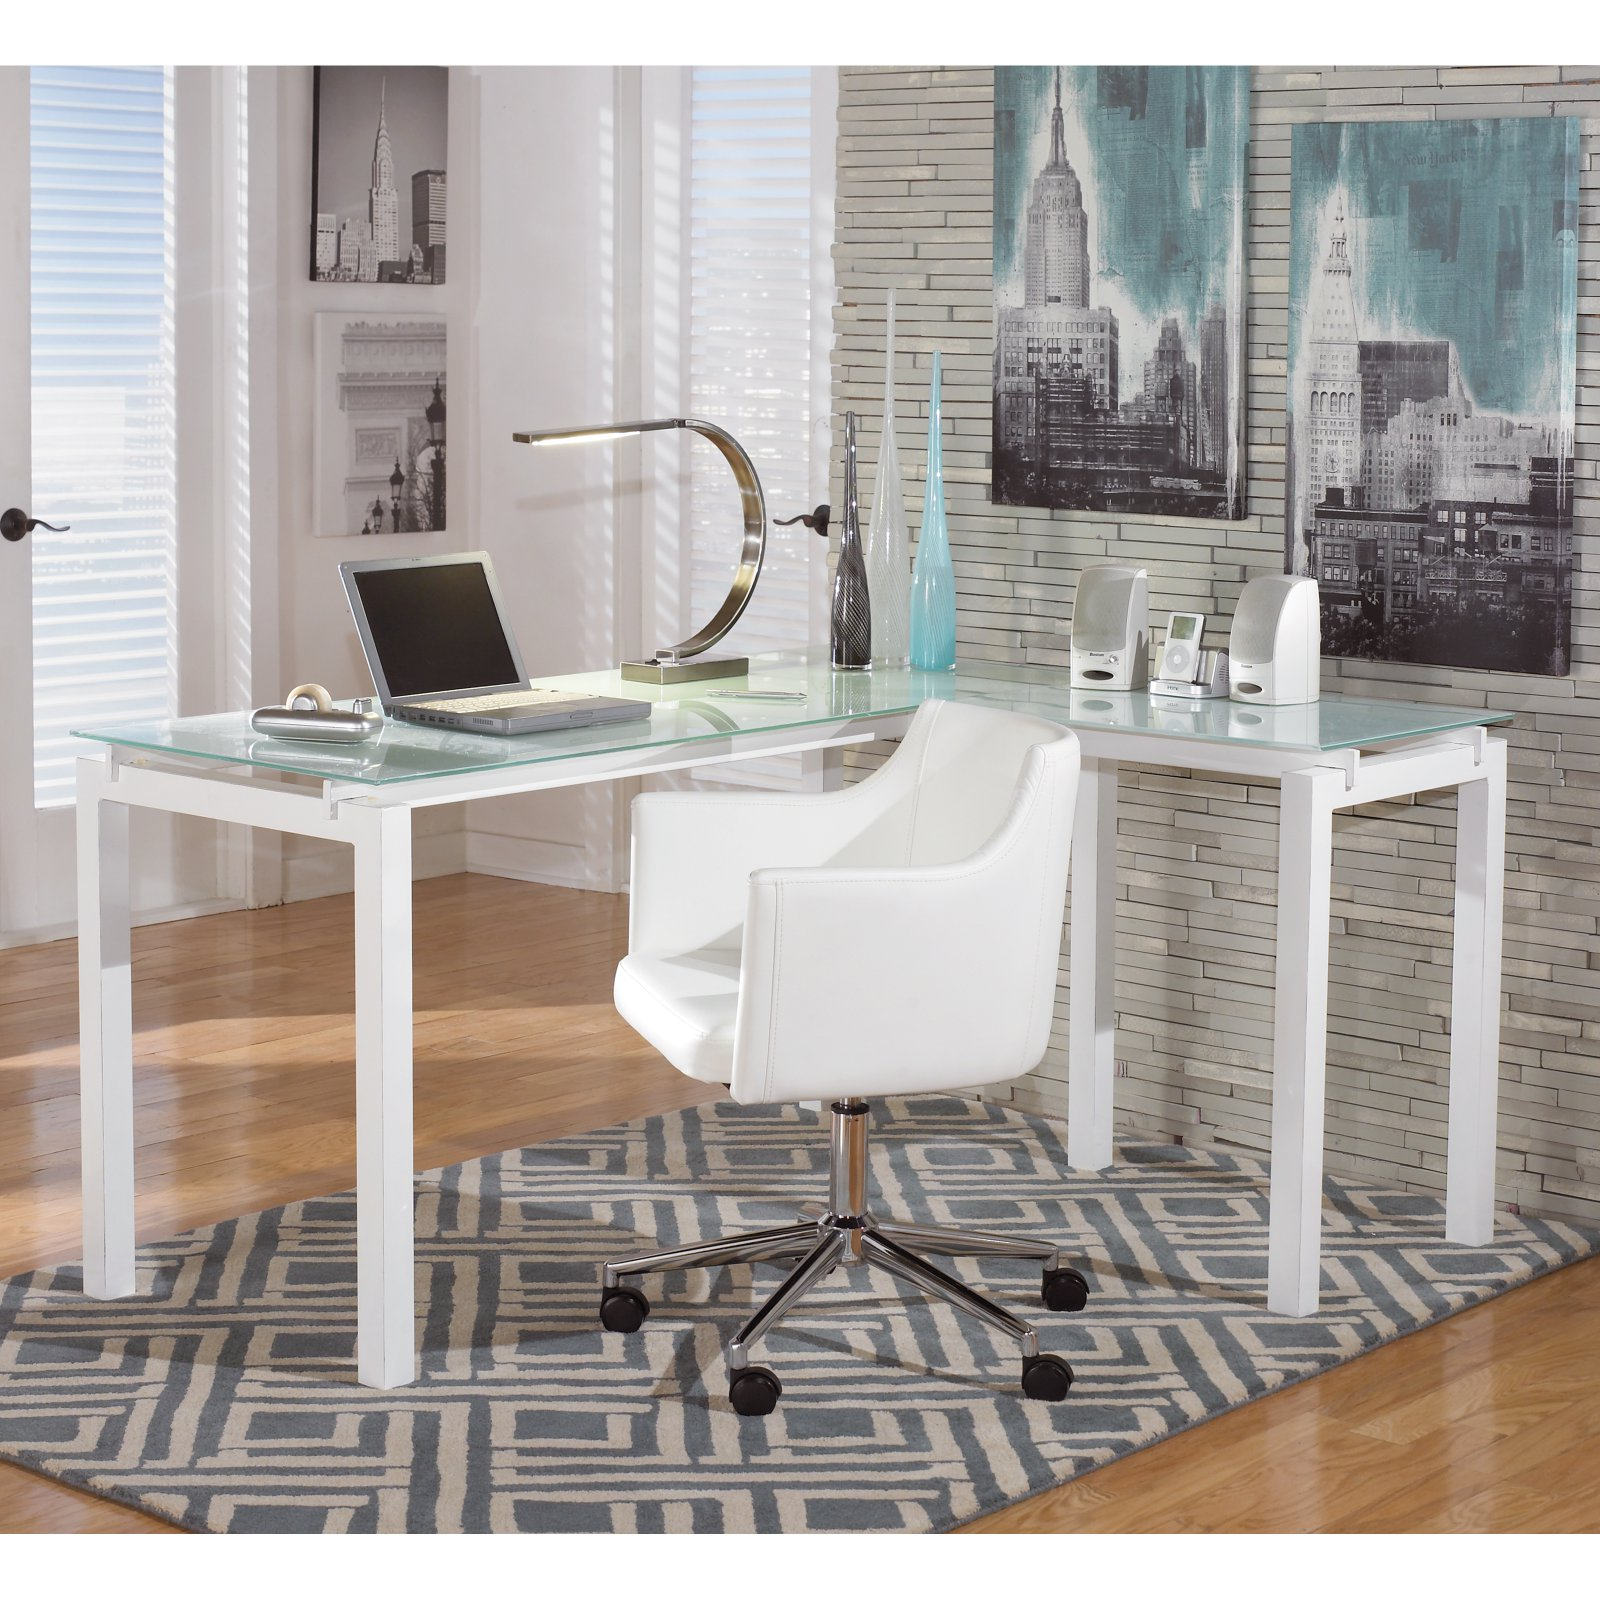 Signature Design by Ashley Baraga L-Shaped Desk - Walmart.com